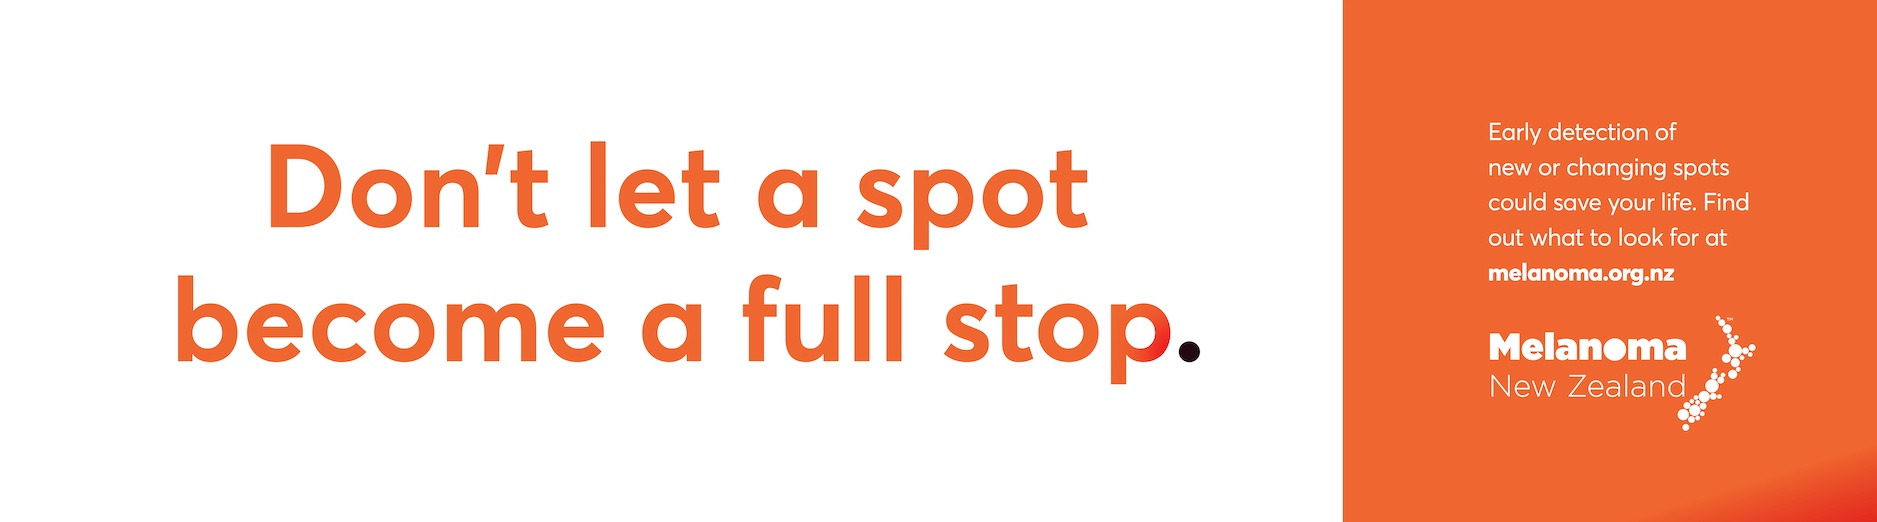 Don't let a spot become a full stop: Melanoma NZ and TBWA\NZ launch awareness campaign hidden in plain sight